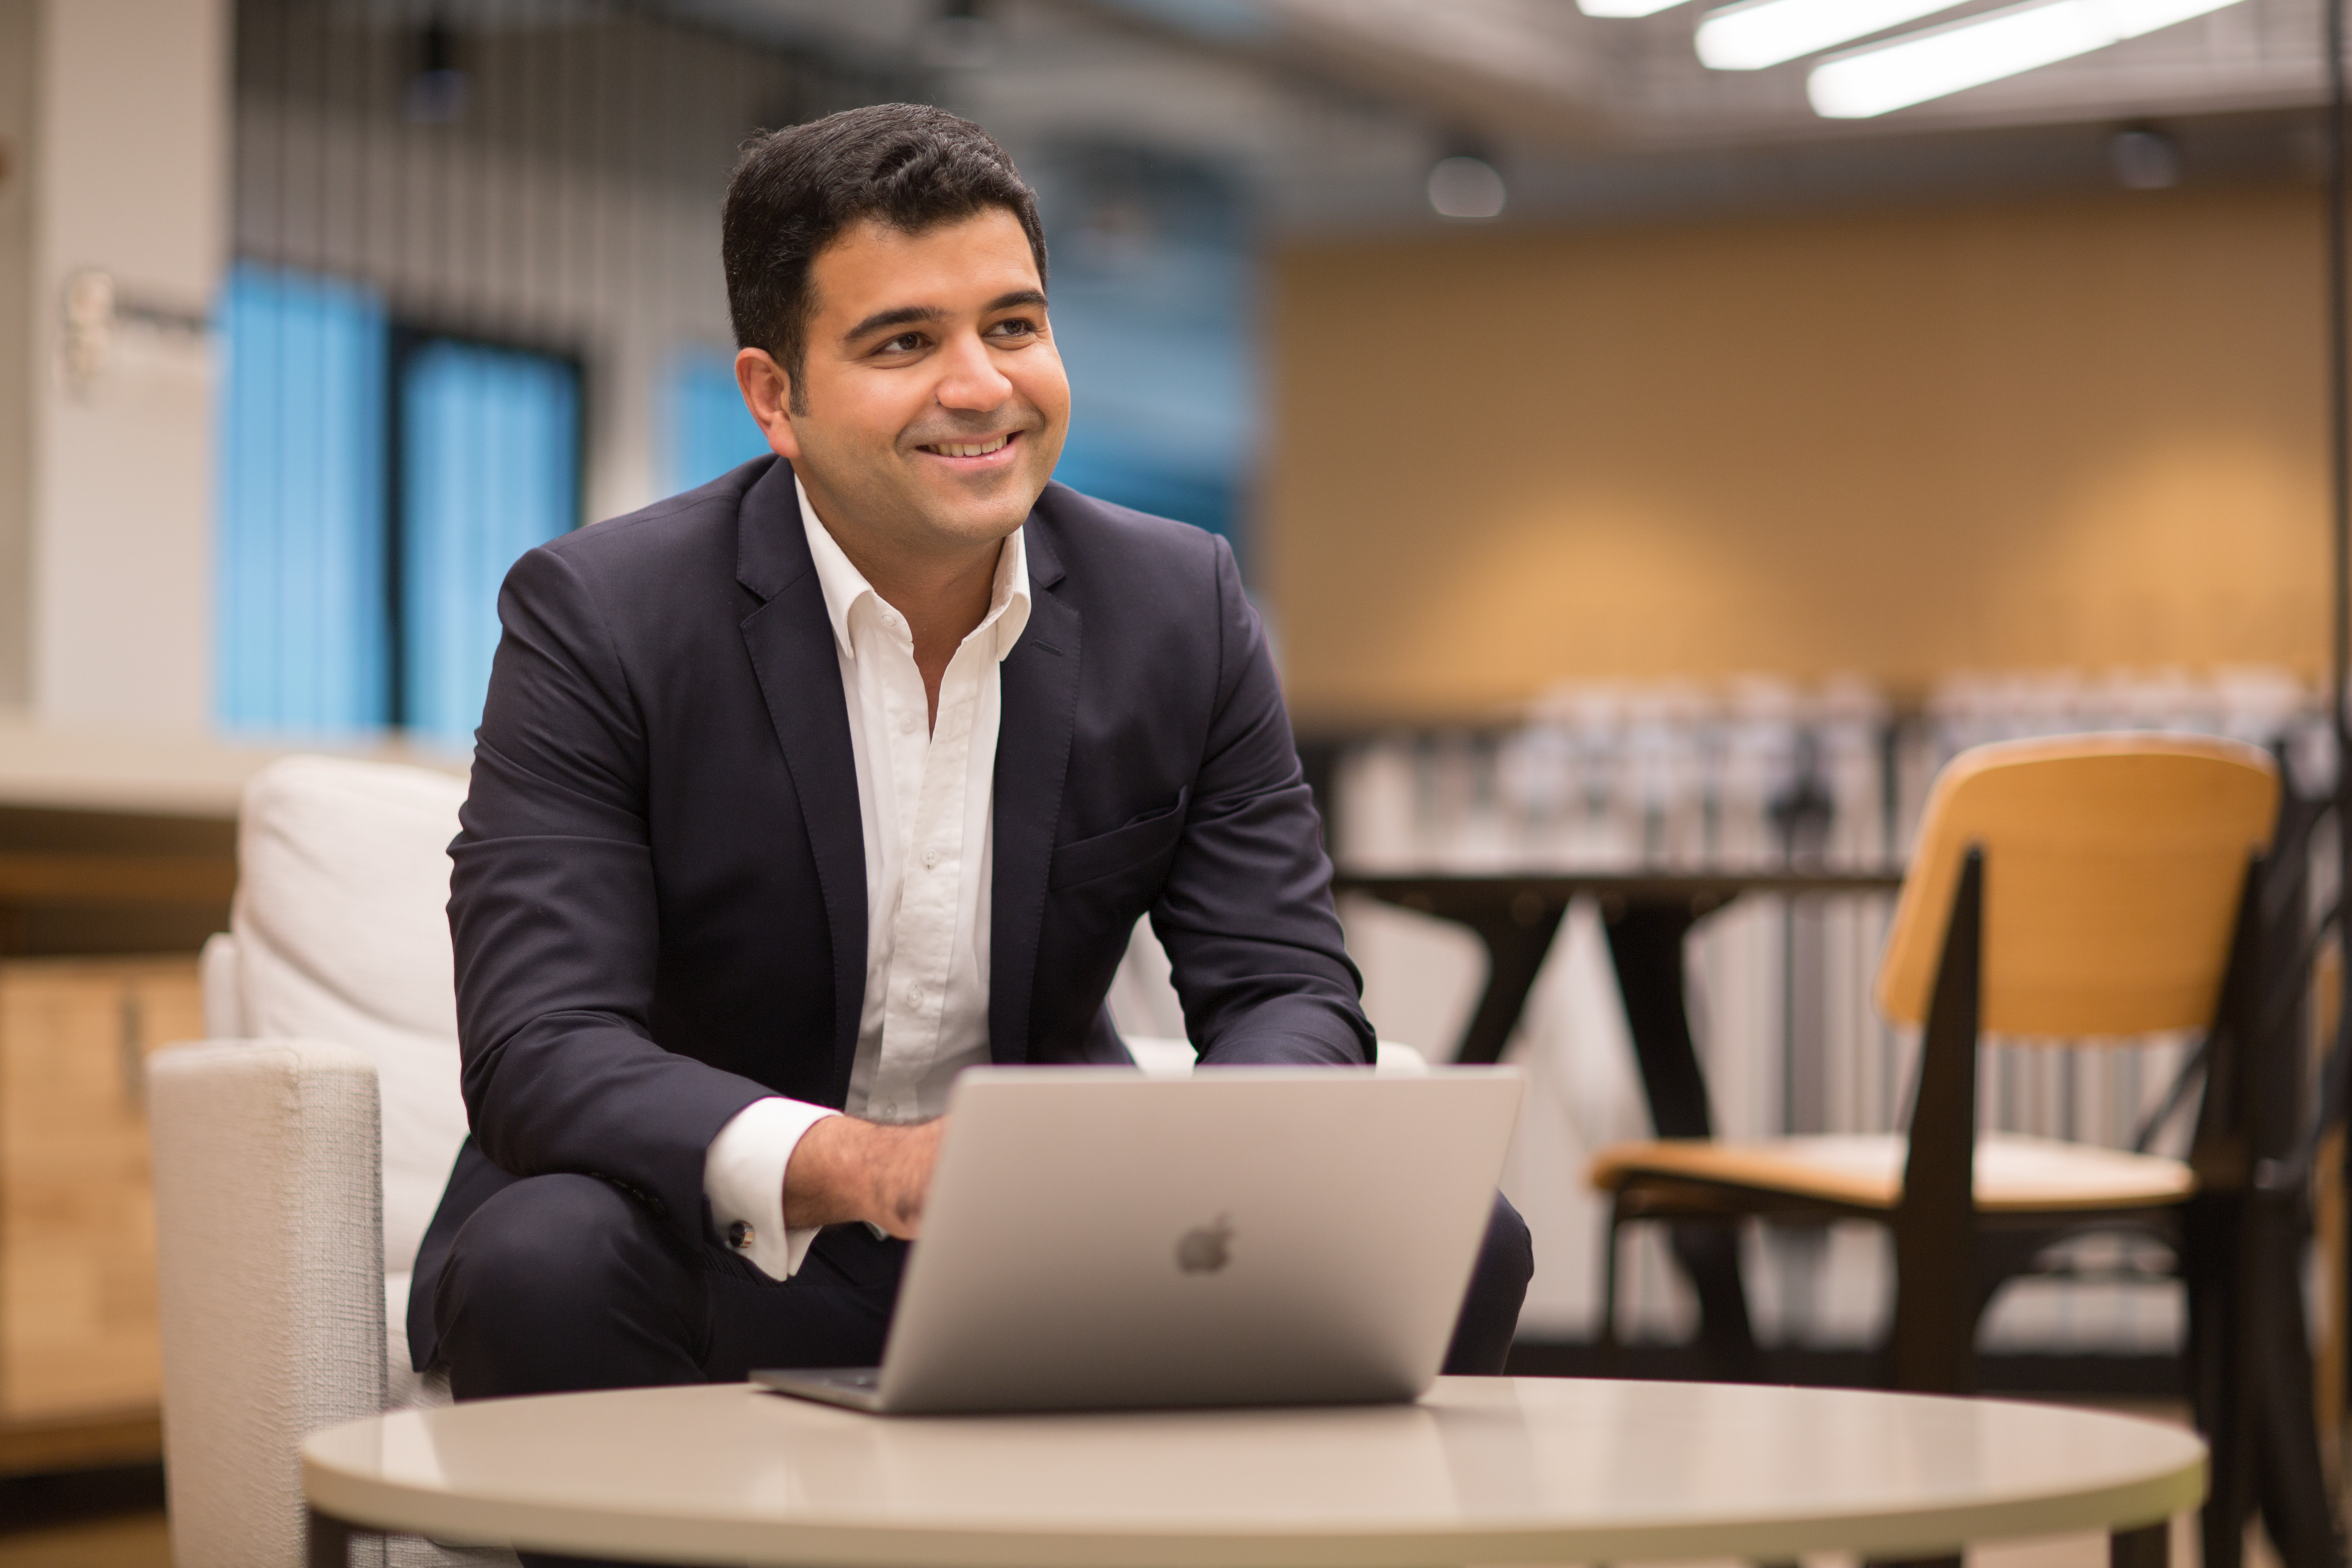 Dhruv Arora, the founder and CEO of Singapore-based investment platform Syfe